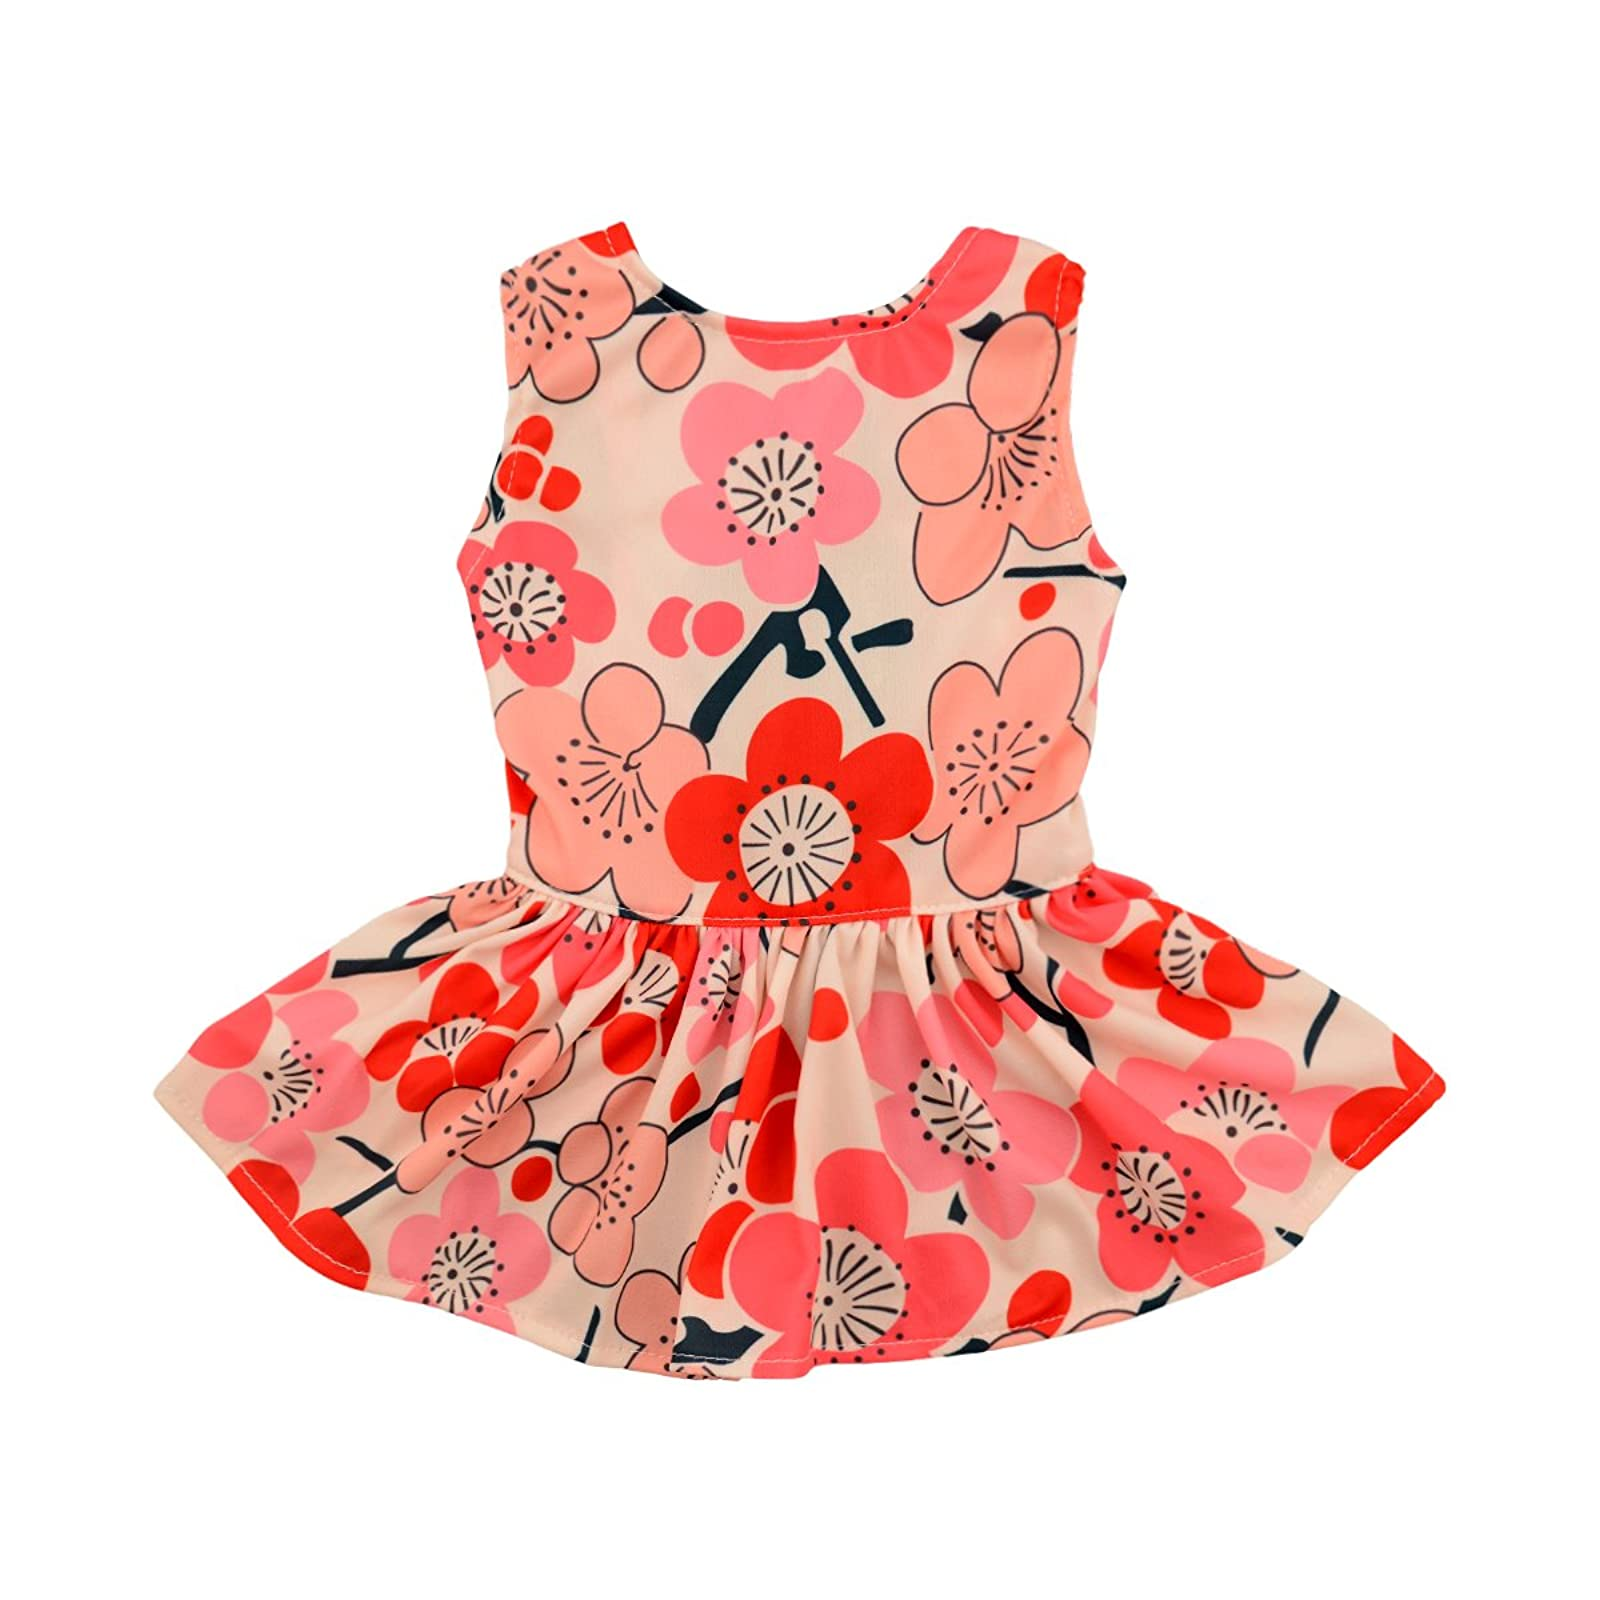 CuteBone Dog Dress Dog Dresses For Small Red M - 1